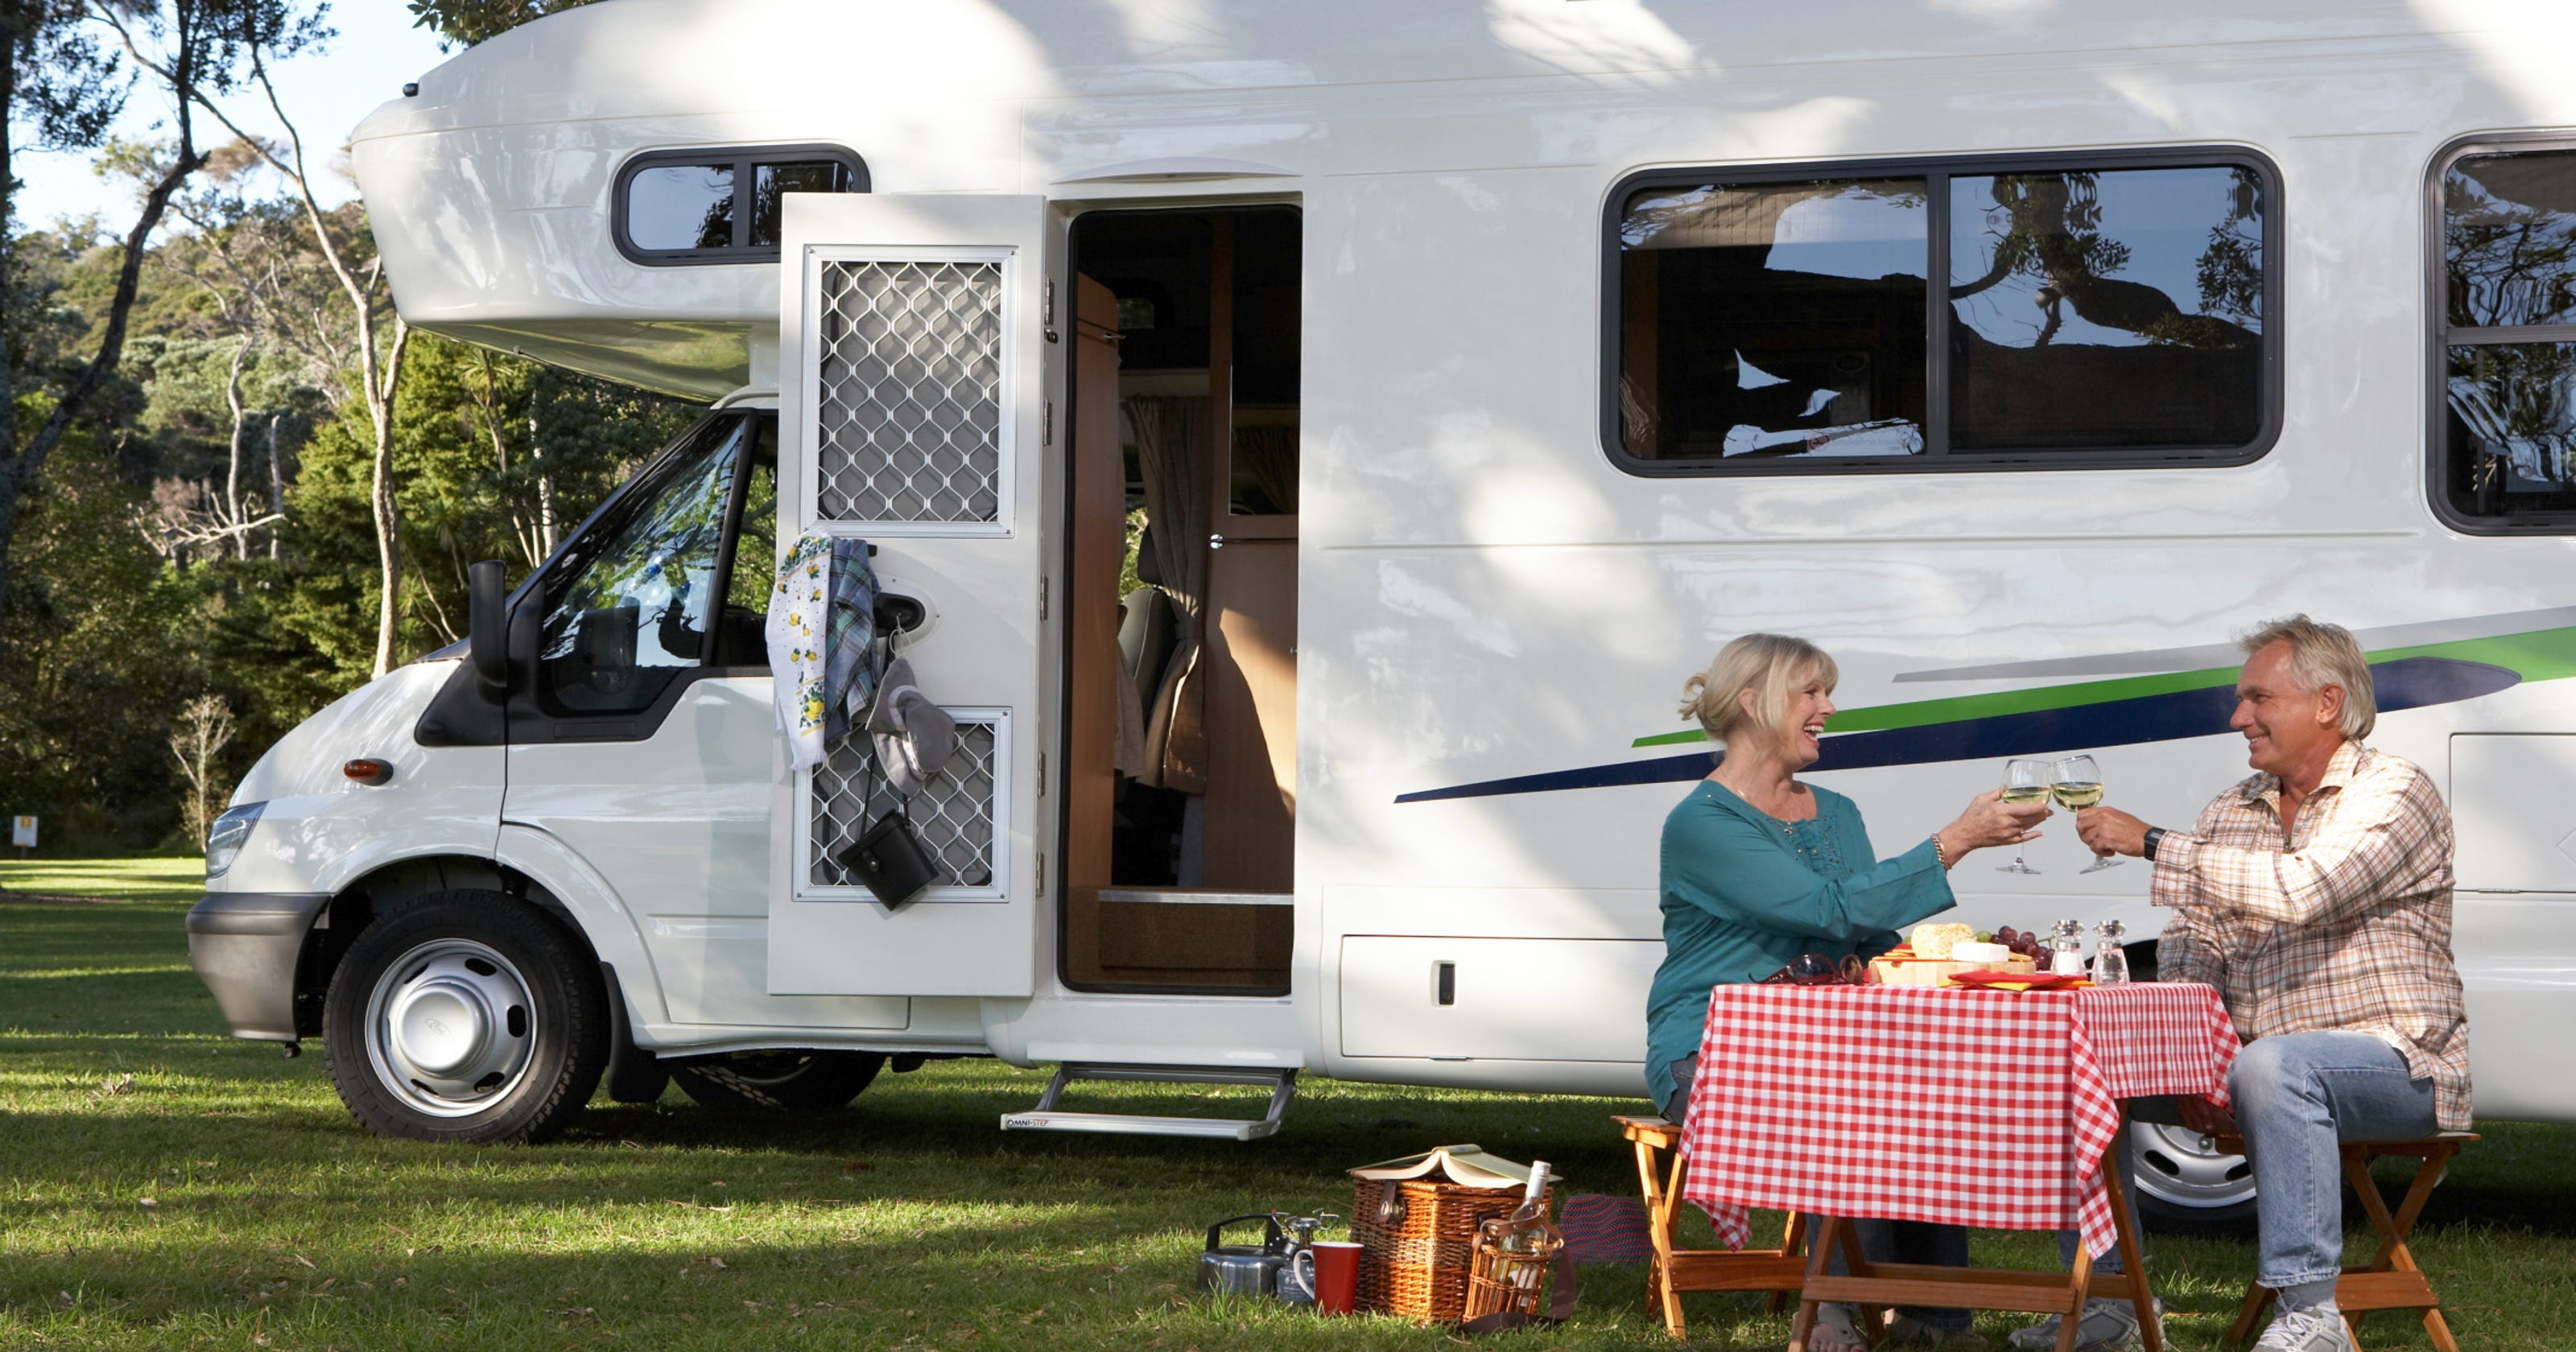 Full-time RV'ers should consider lot ownership